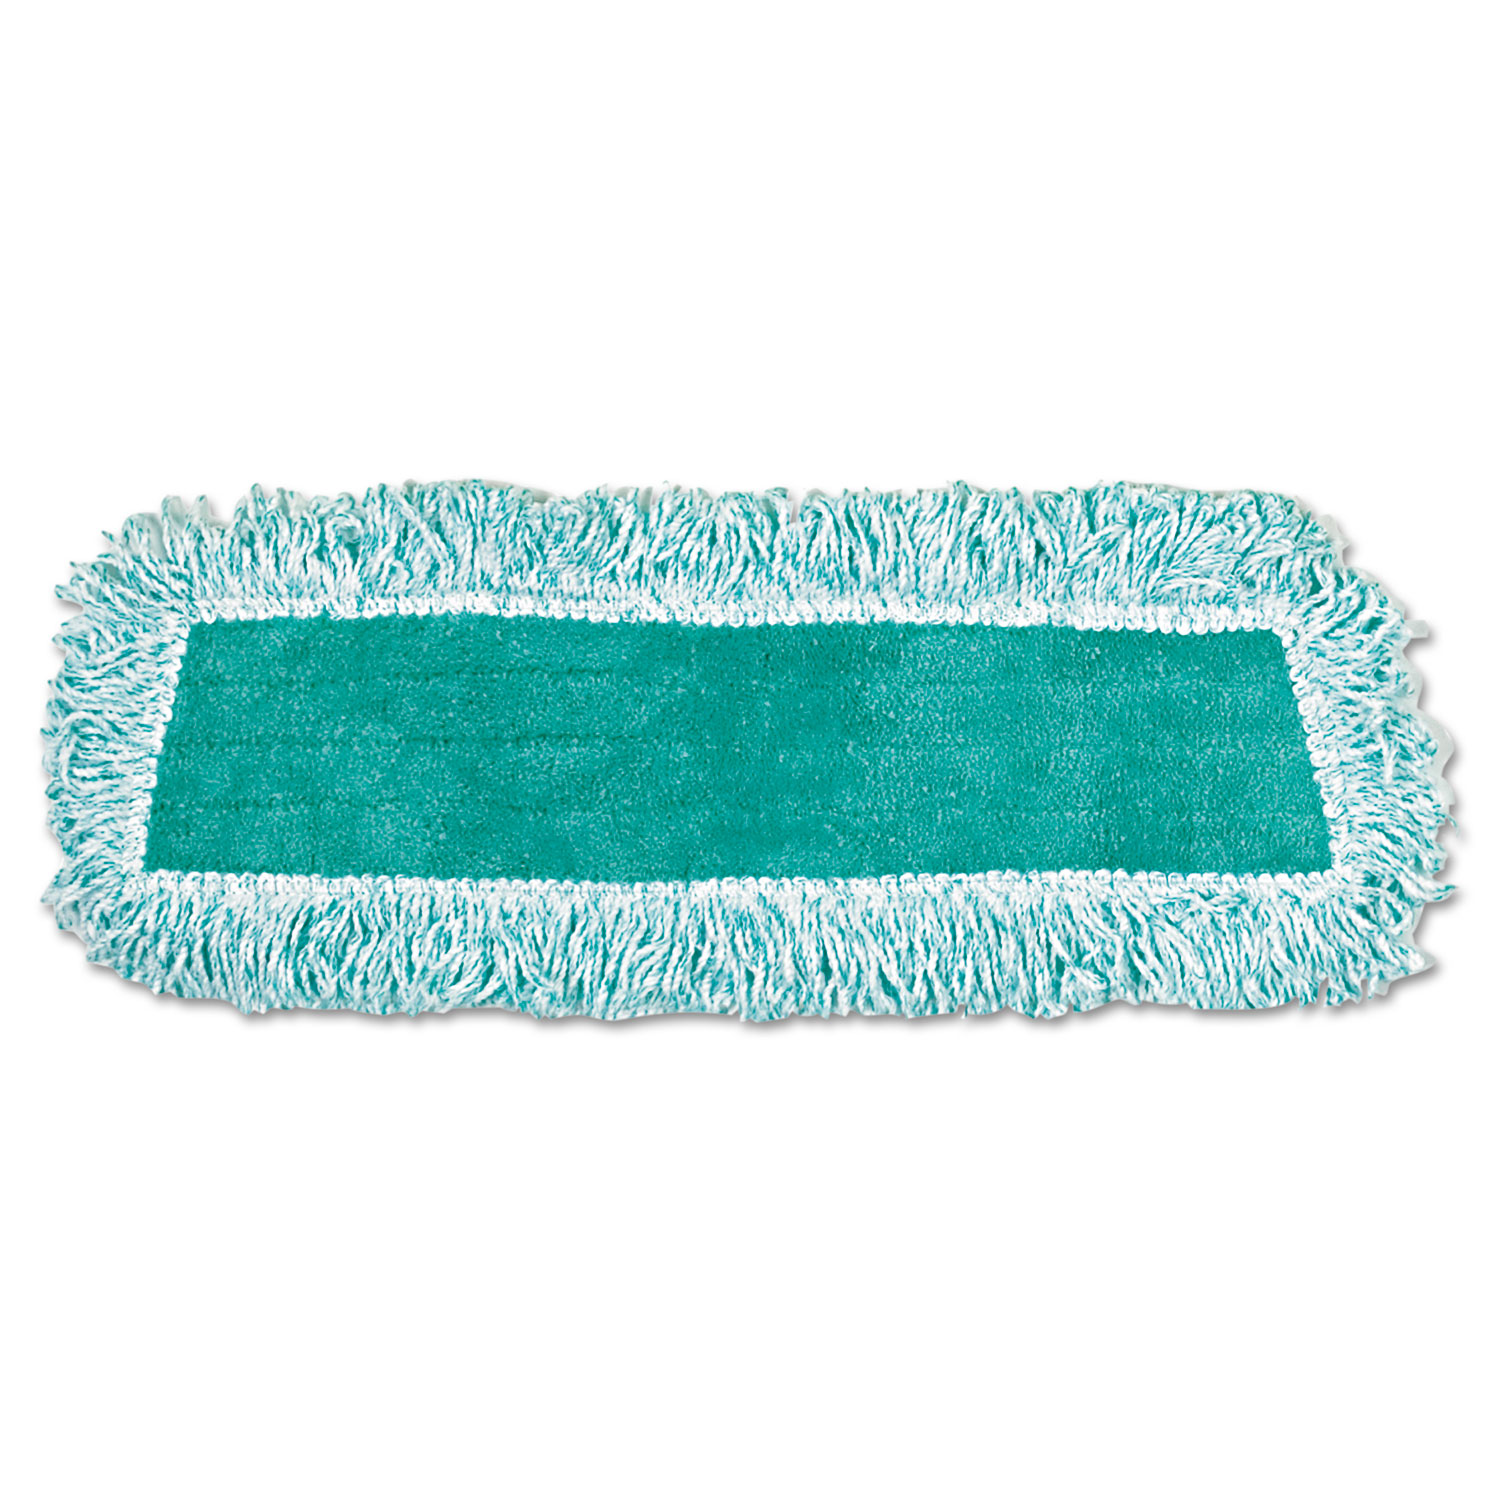 Standard Microfiber Dust Mop With Fringe, Cut-End, 18 x 5, Green